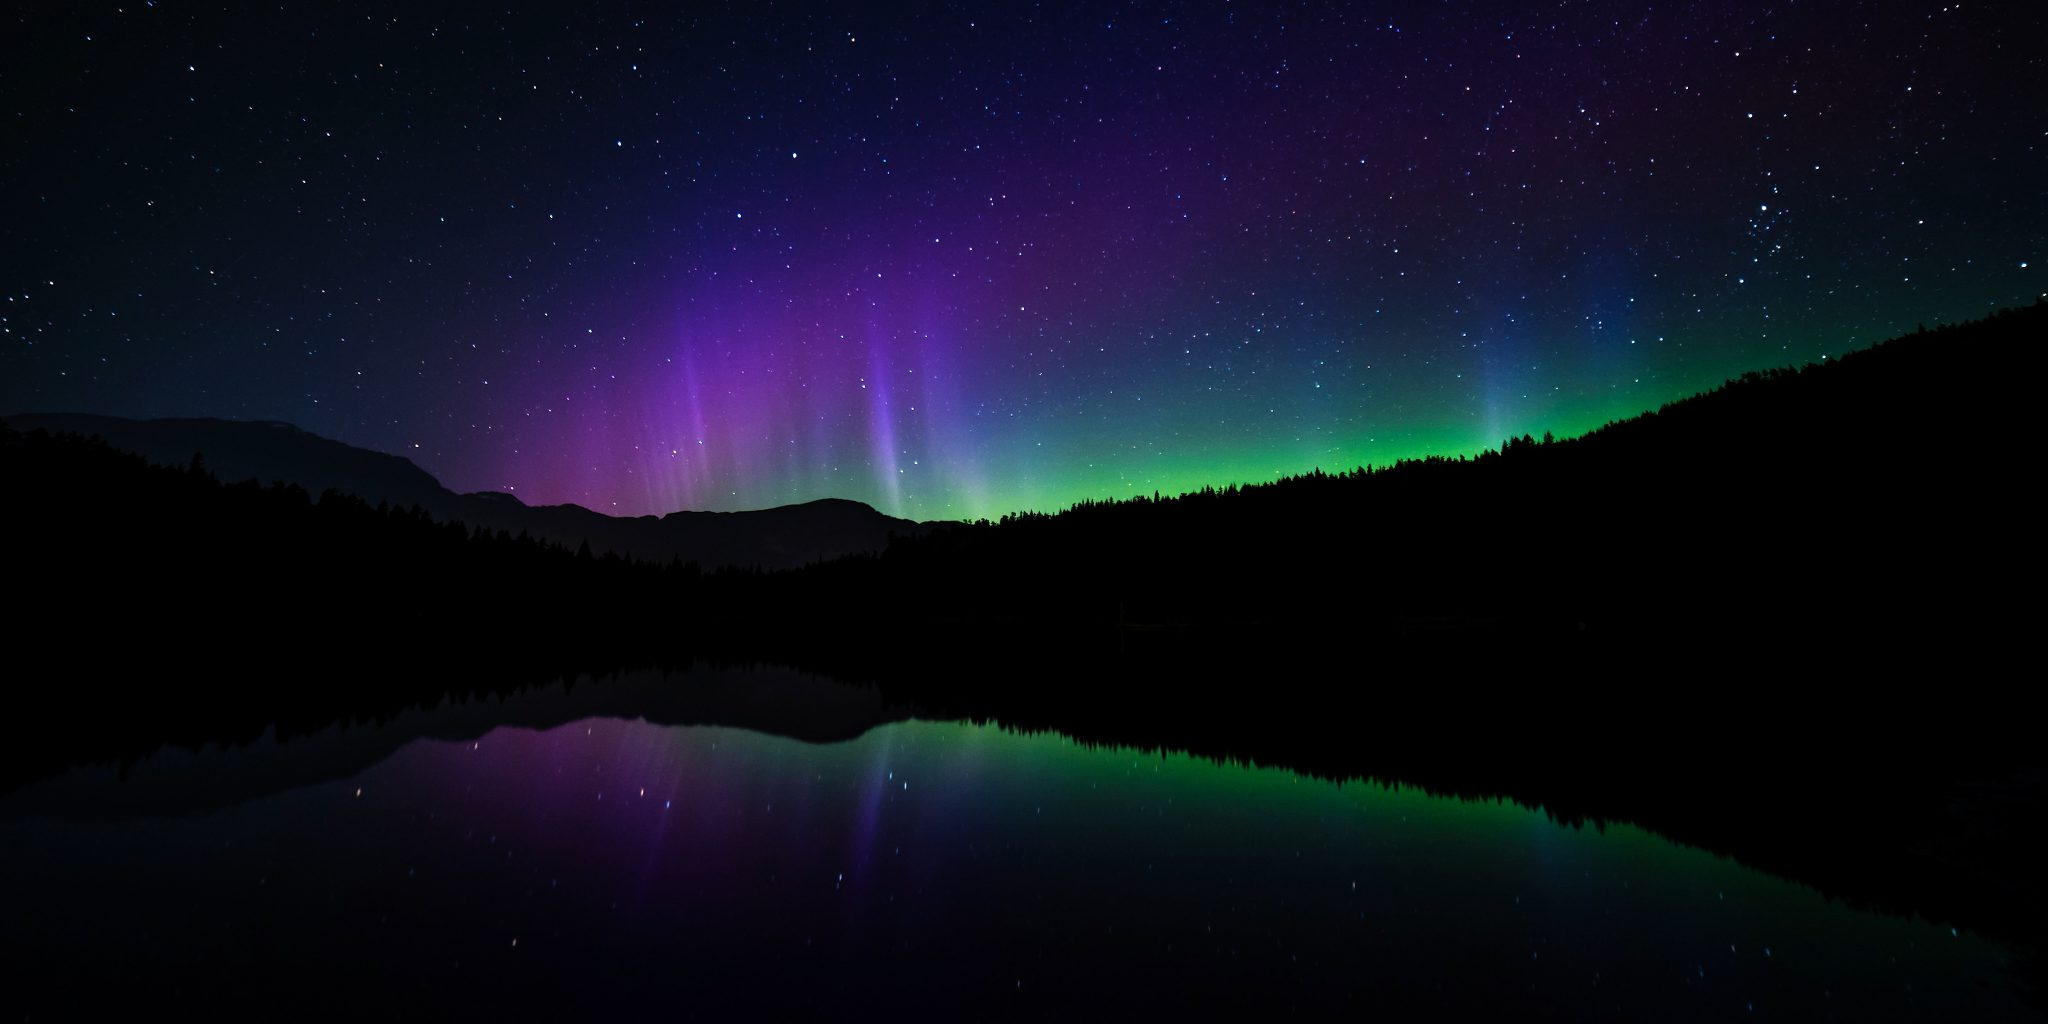 Northern Lights above a calm lake at night